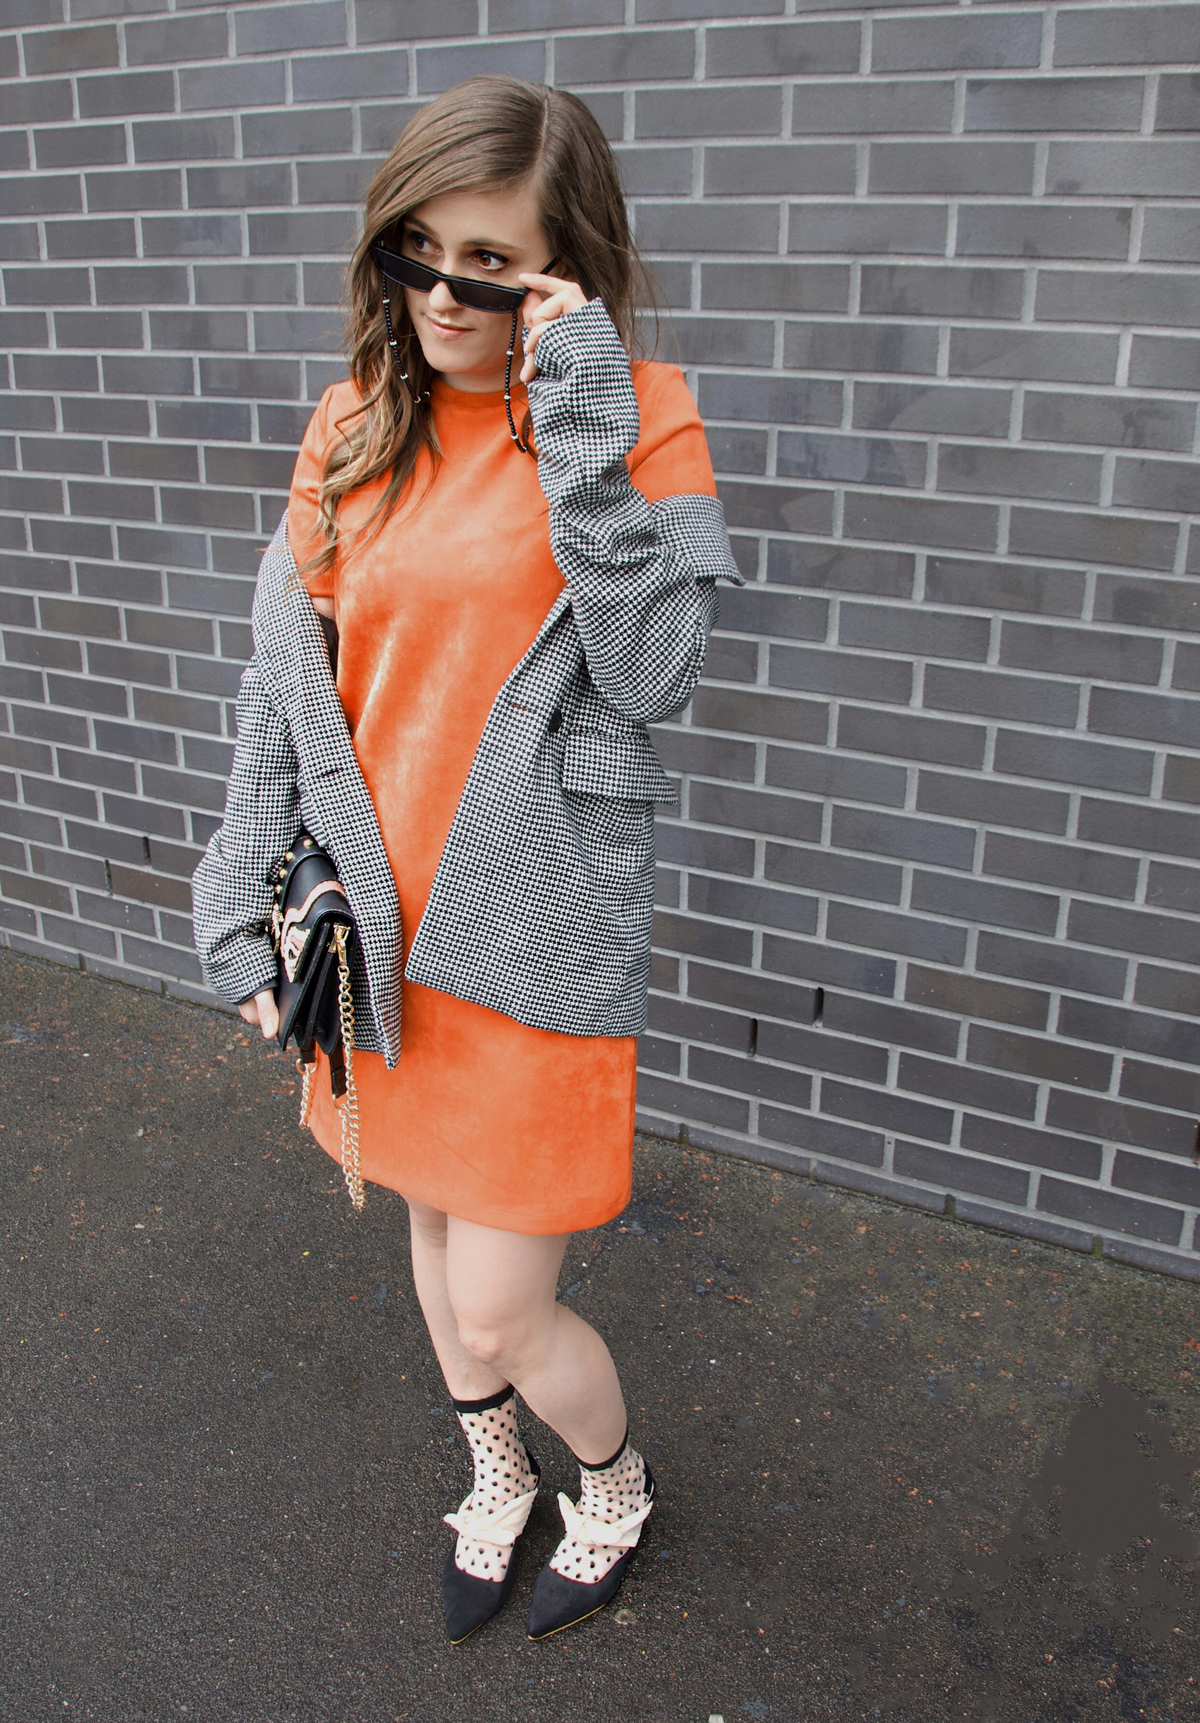 Andrea Steiner from fashion blog Strawberries 'n' Champagne based in Lucerne (Switzerland) wear a orange dress with a plaid blazer.